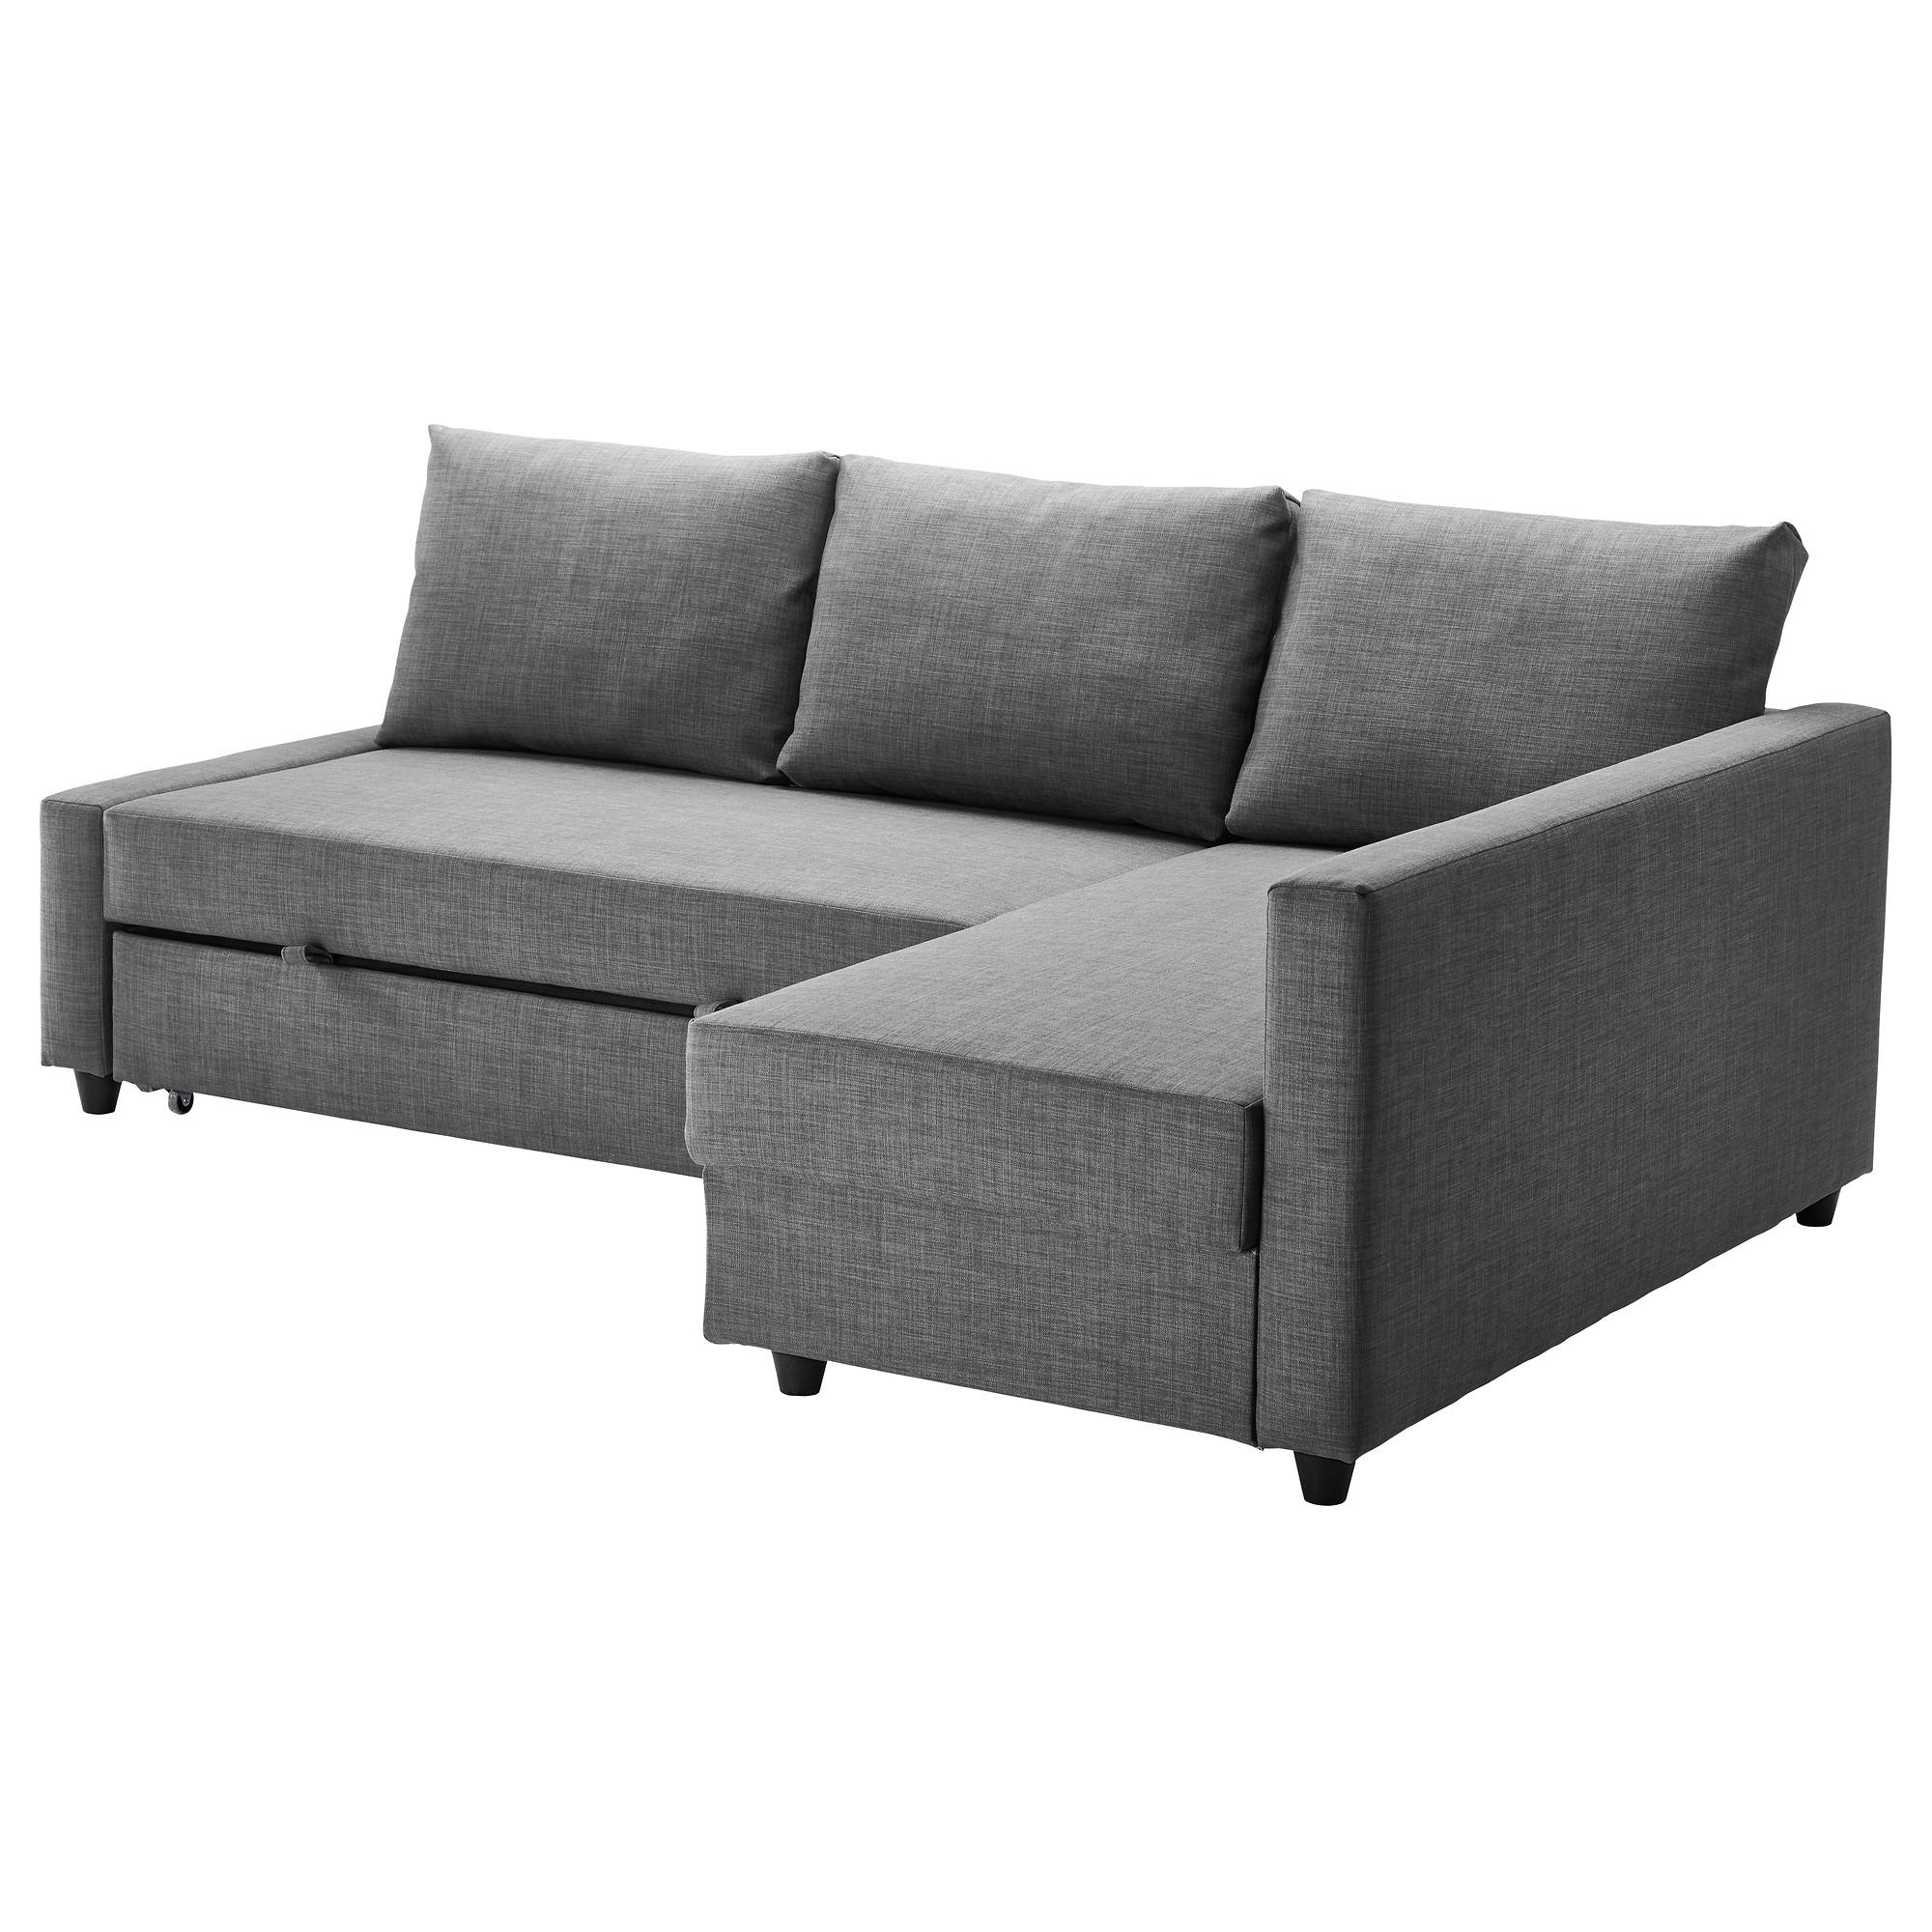 Sofa Beds & Futons – Ikea With Regard To Sectional Sofa Bed With Storage (View 4 of 20)